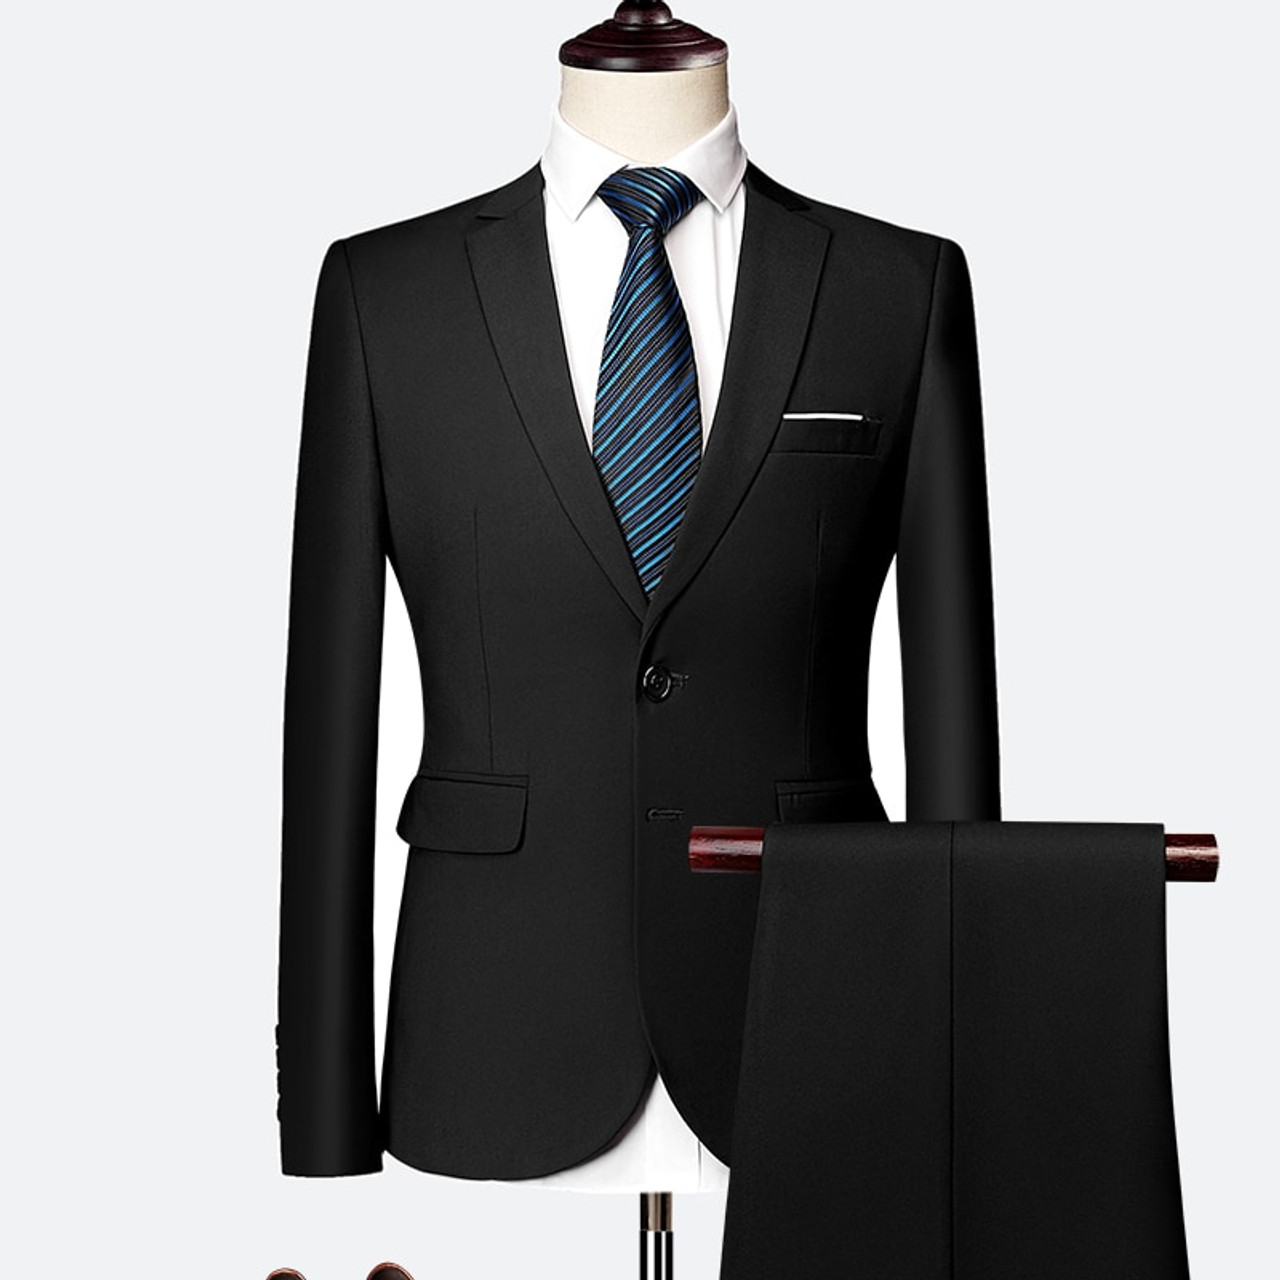 Suits For Wedding.Plyesxale Two Piece Suit For Men Sky Blue Gray White Men Suits For Wedding Tuxedo Slim Fit Mens Suits With Pants Burgundy Q64